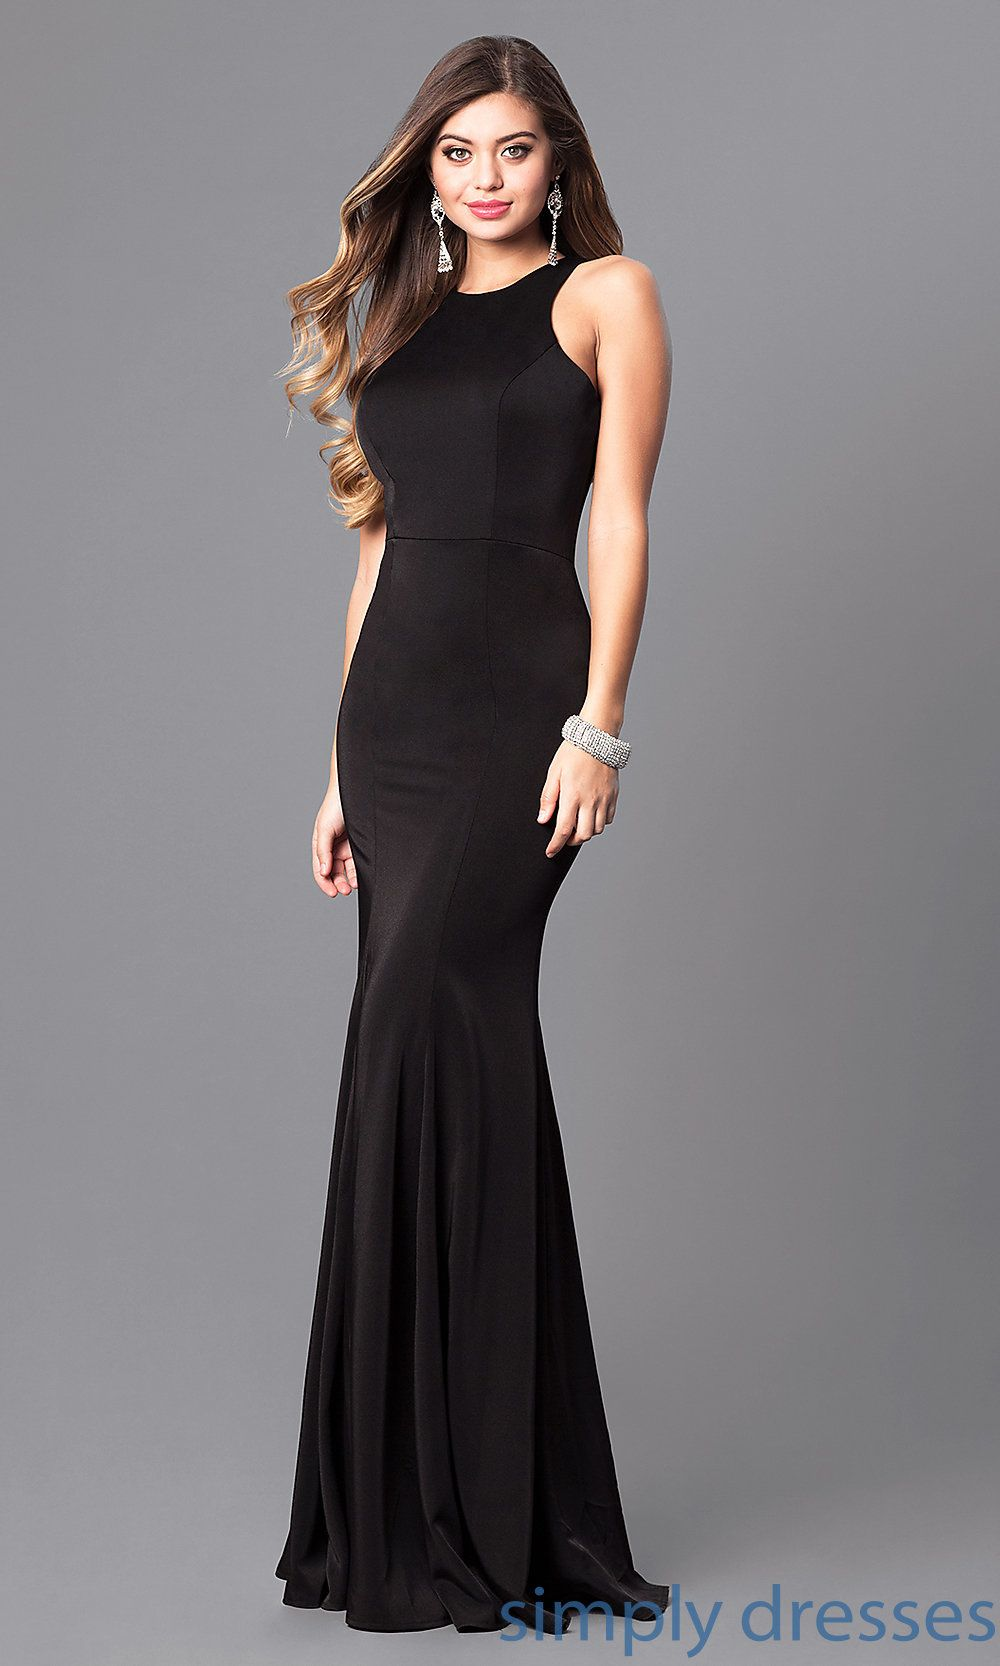 5a3fb241db04e Shop mermaid long formal dresses at Simply Dresses. High-neck evening  dresses under $200 with long mermaid skirts in form-fitting jersey.